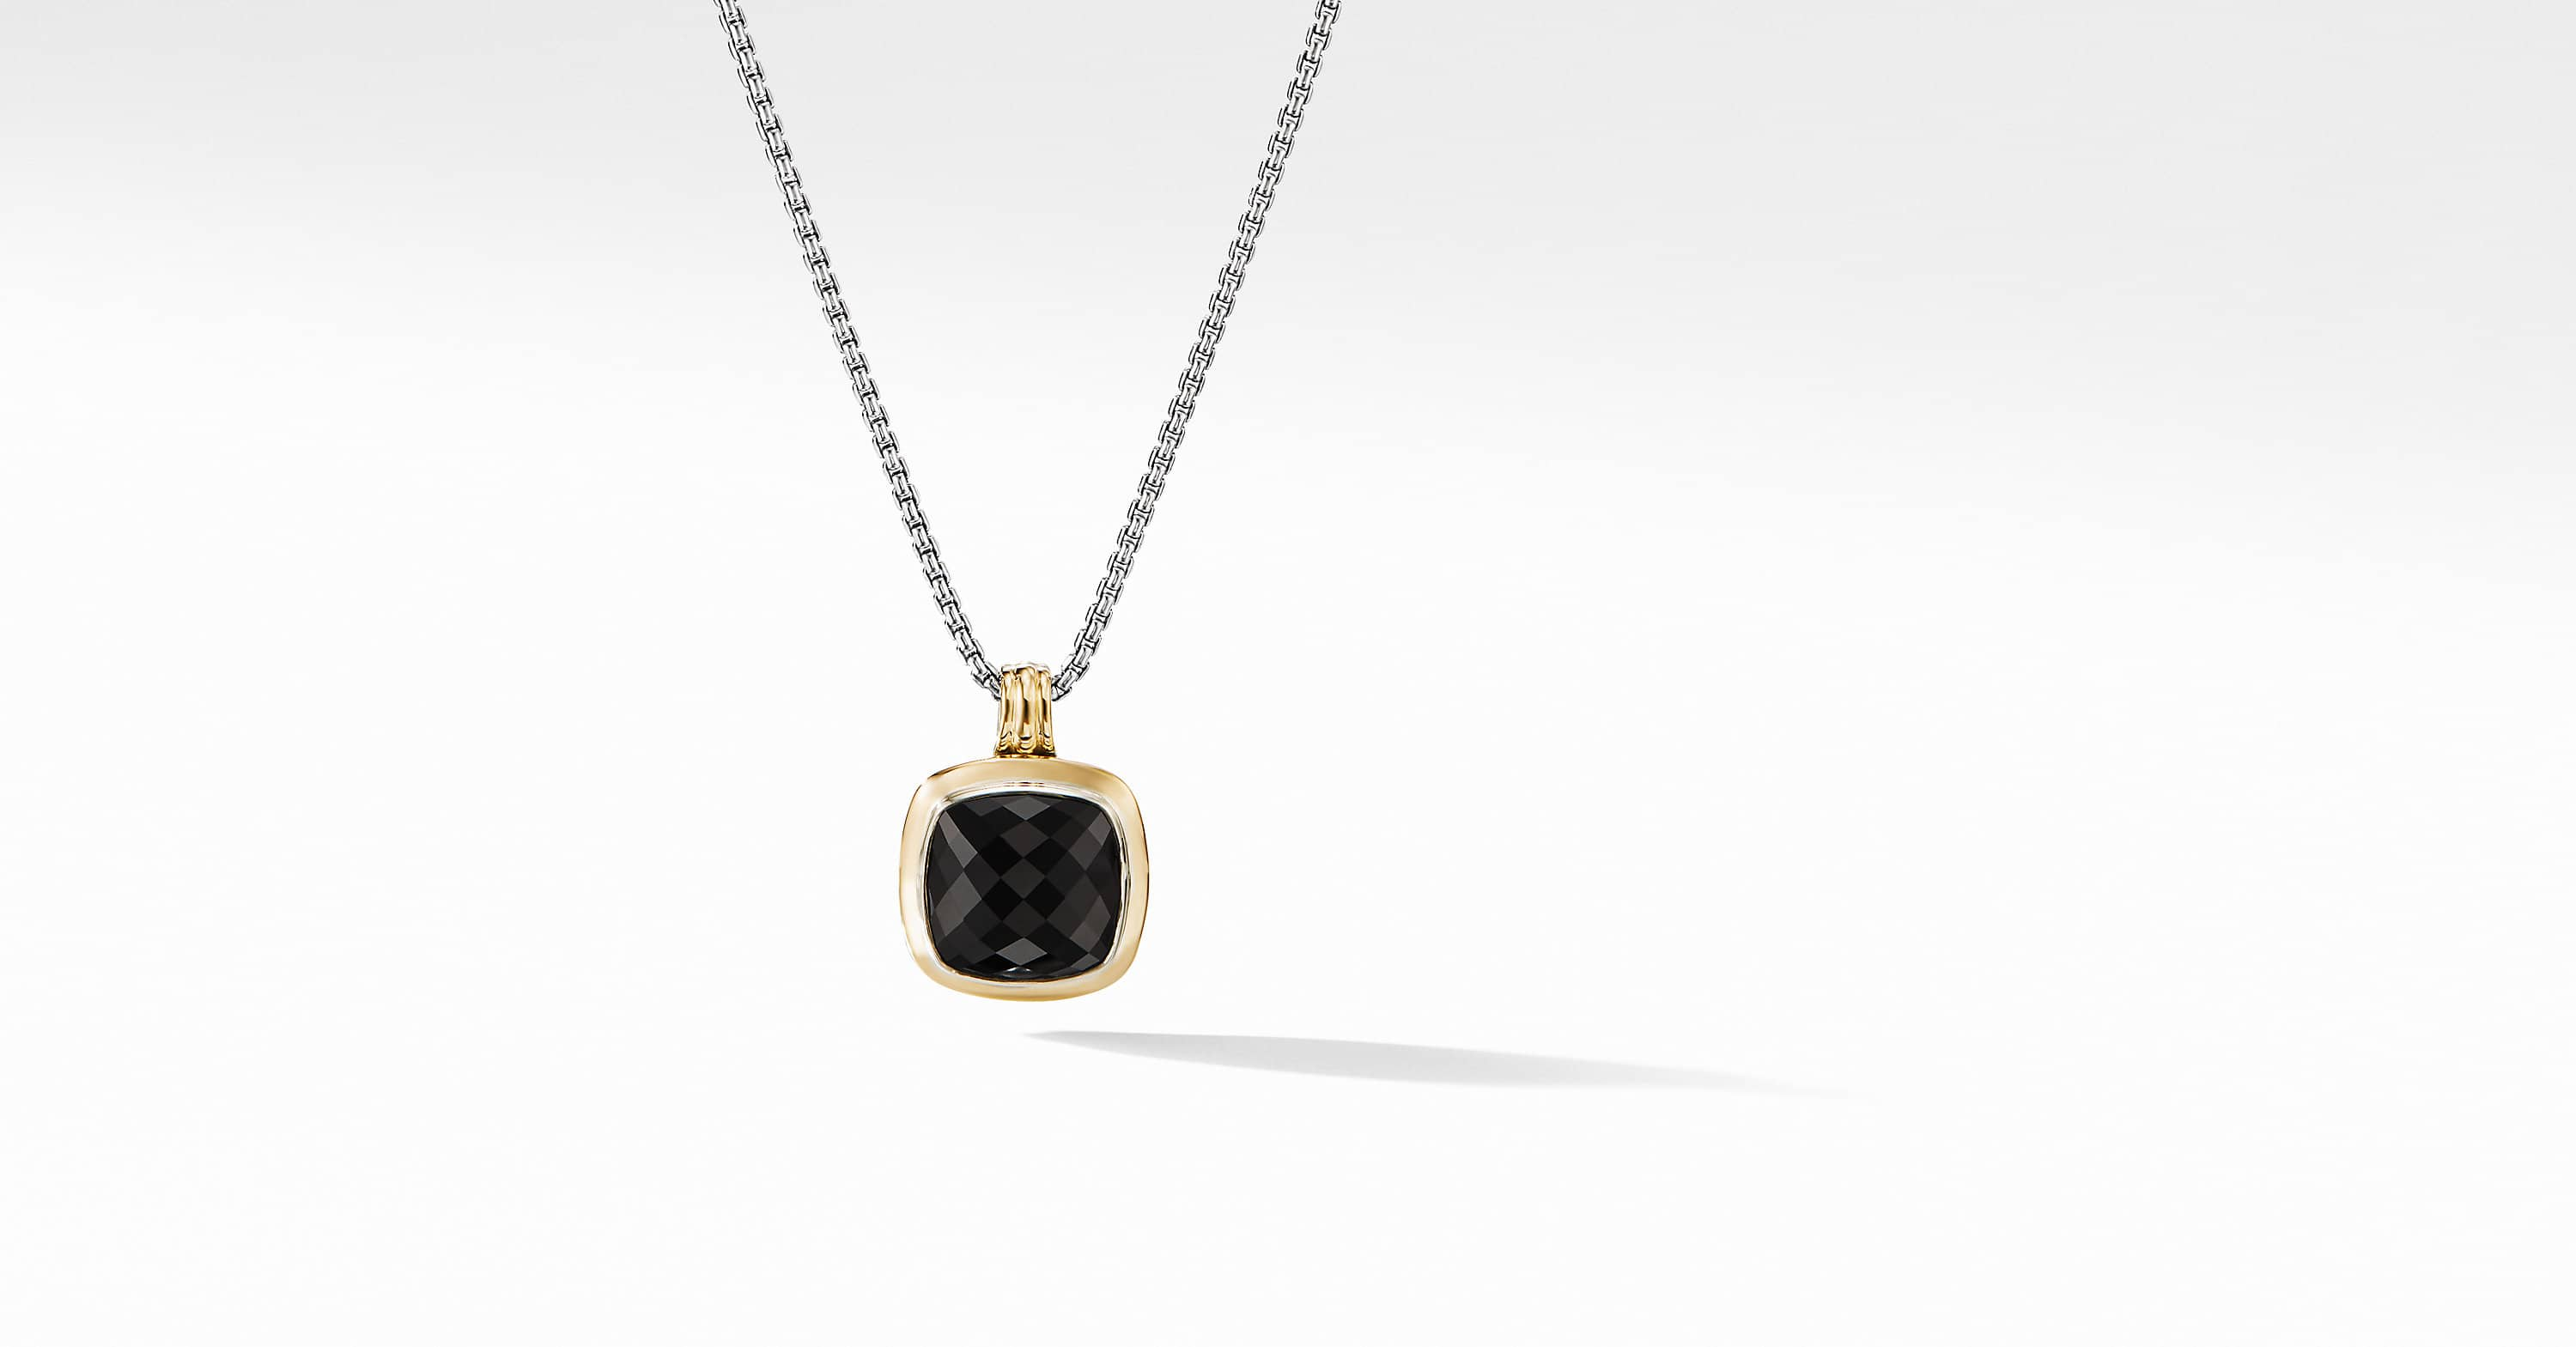 Albion Pendant with 18K Gold, 20mm